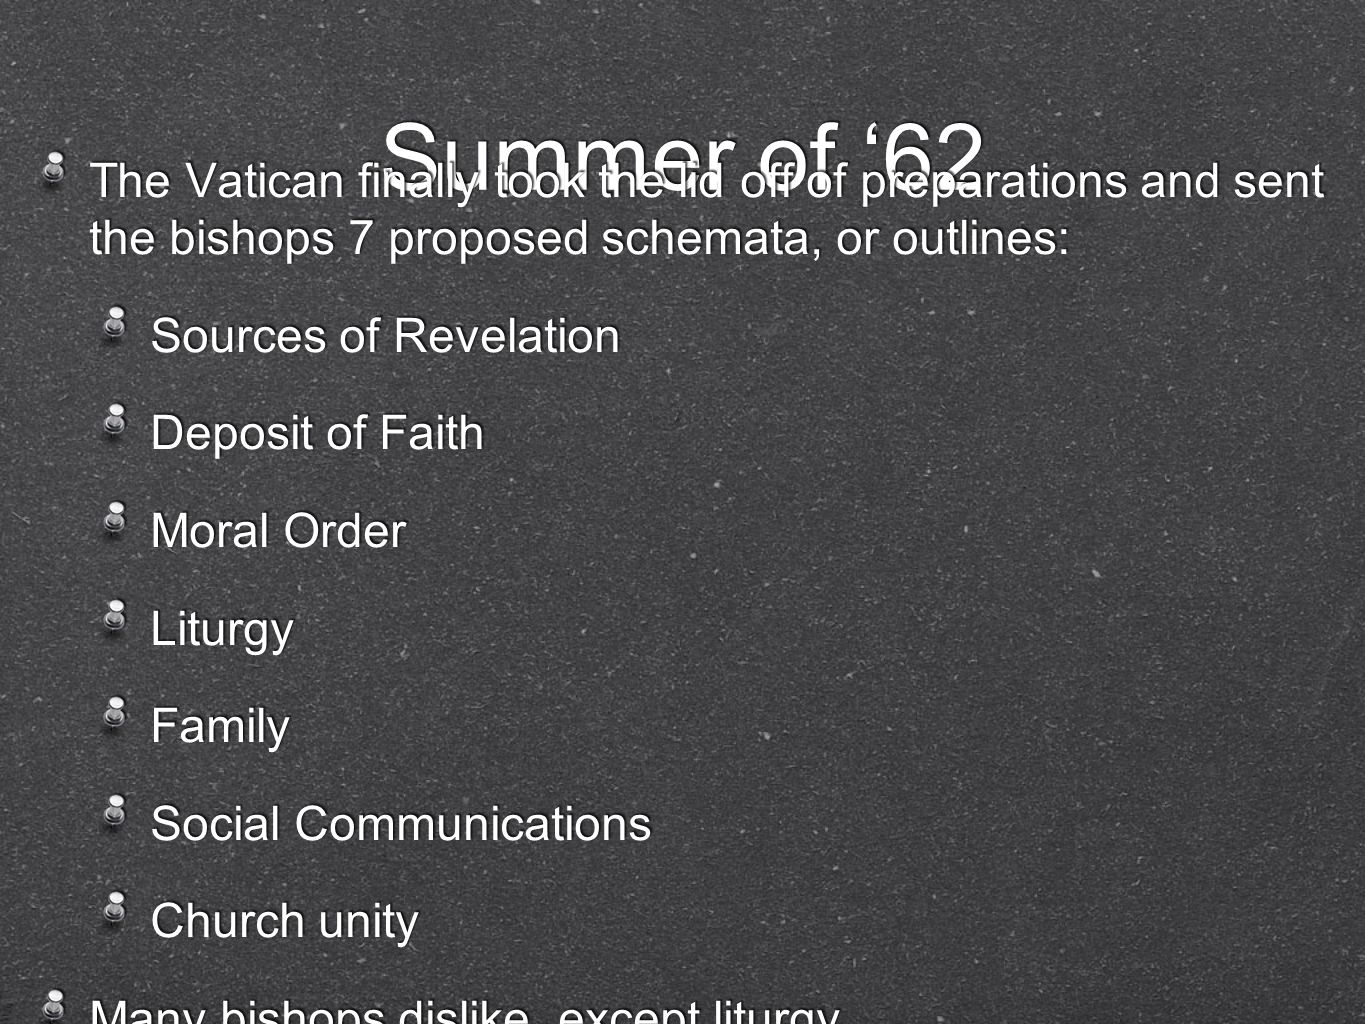 Summer of '62 The Vatican finally took the lid off of preparations and sent the bishops 7 proposed schemata, or outlines: